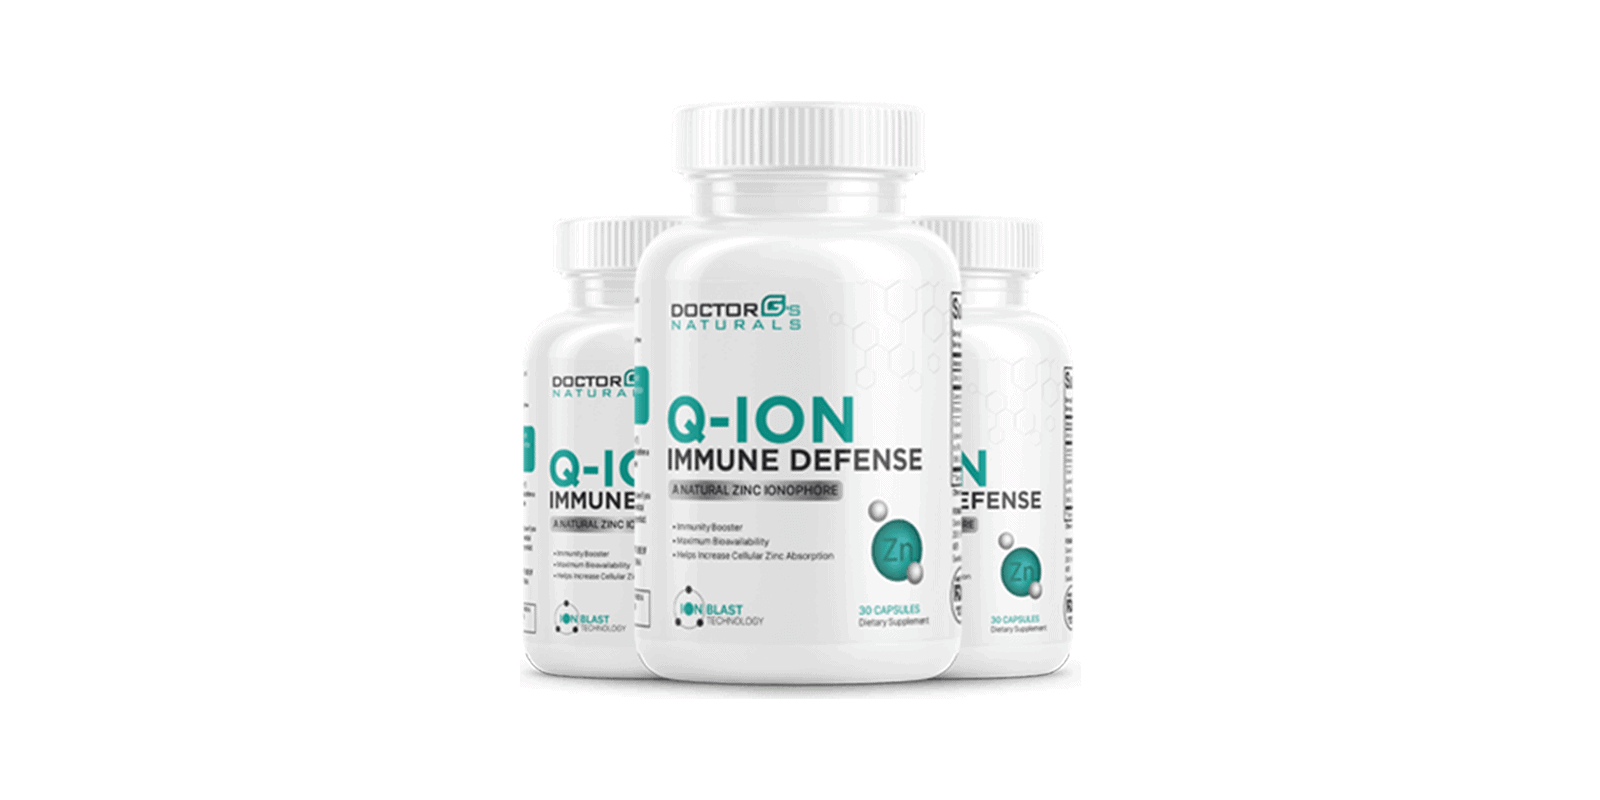 Q-ION Immune Defence review